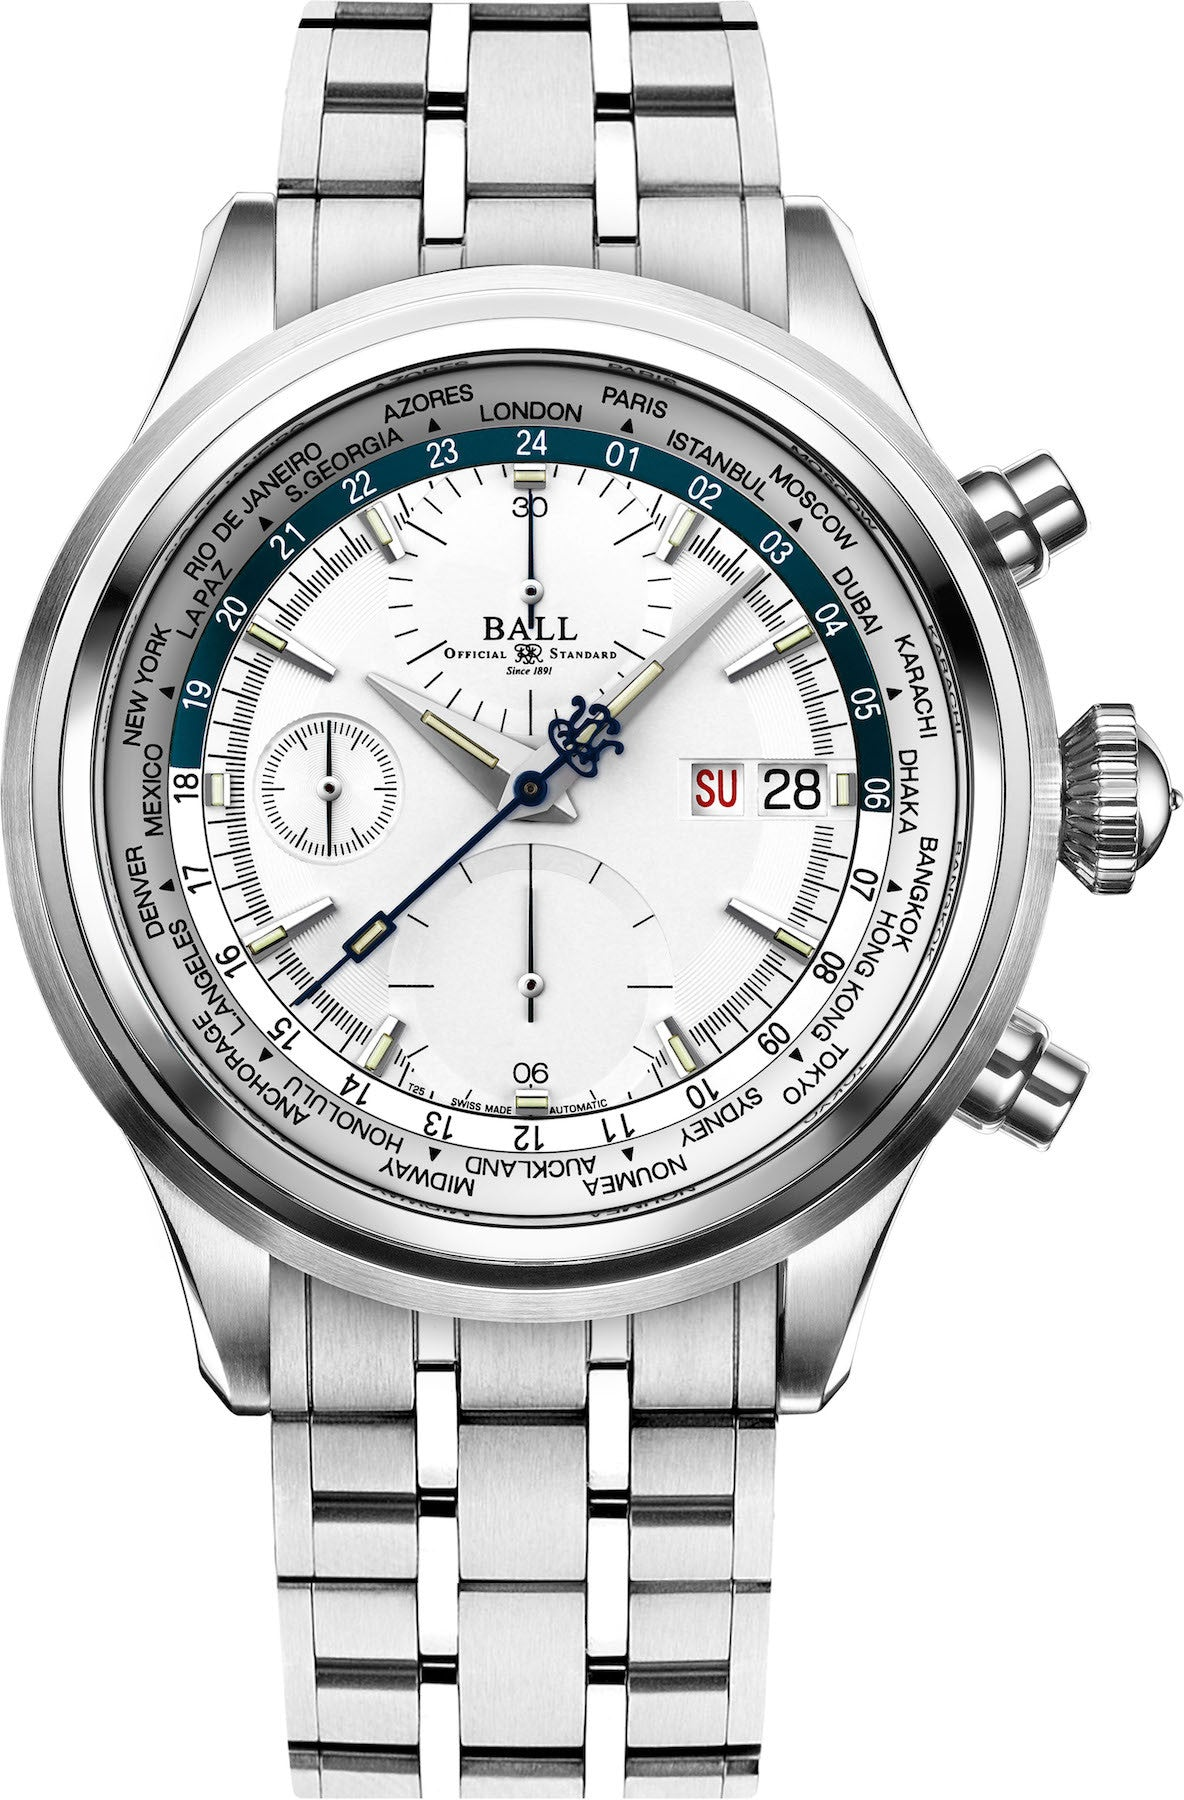 Ball Watch Company Trainmaster Worldtime Chronograph Pre-Order